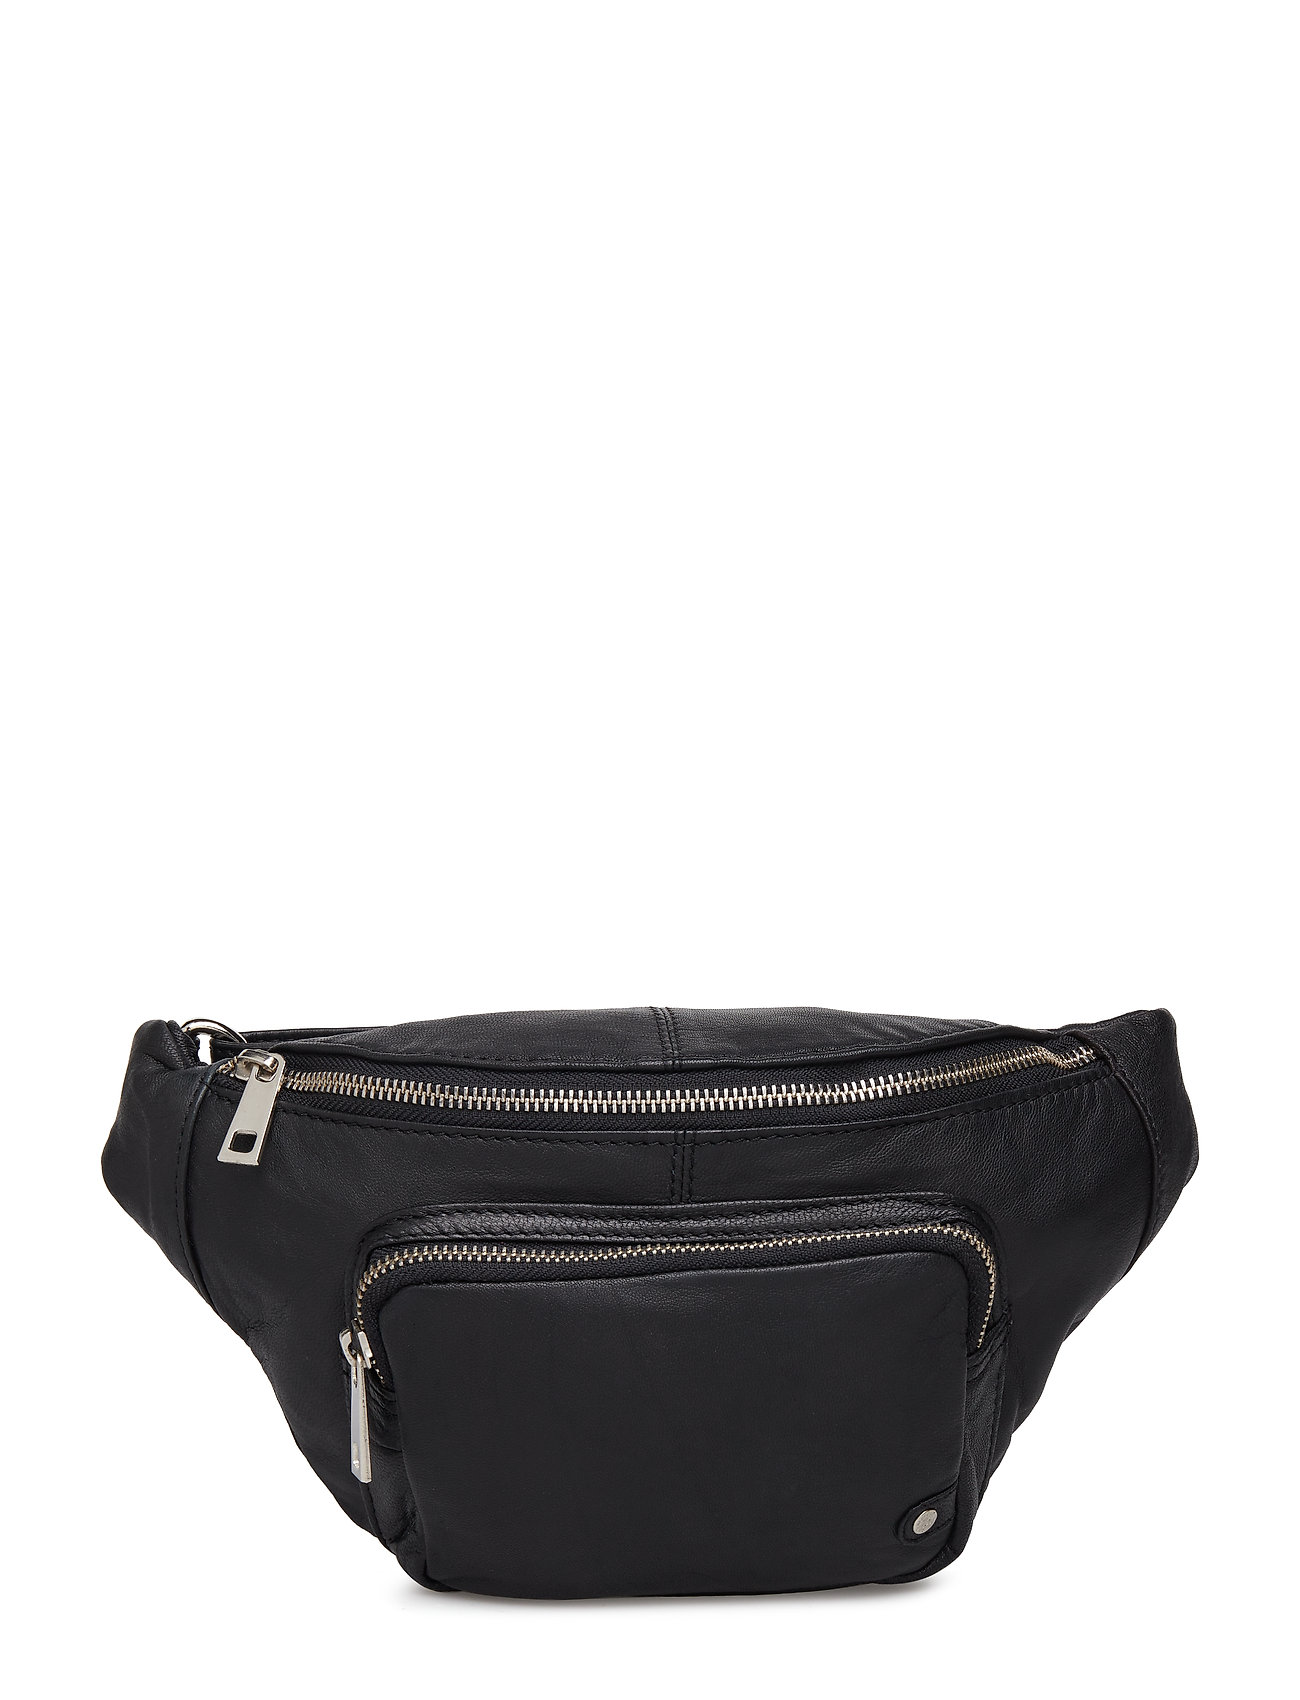 DEPECHE Bum bag - BLACK